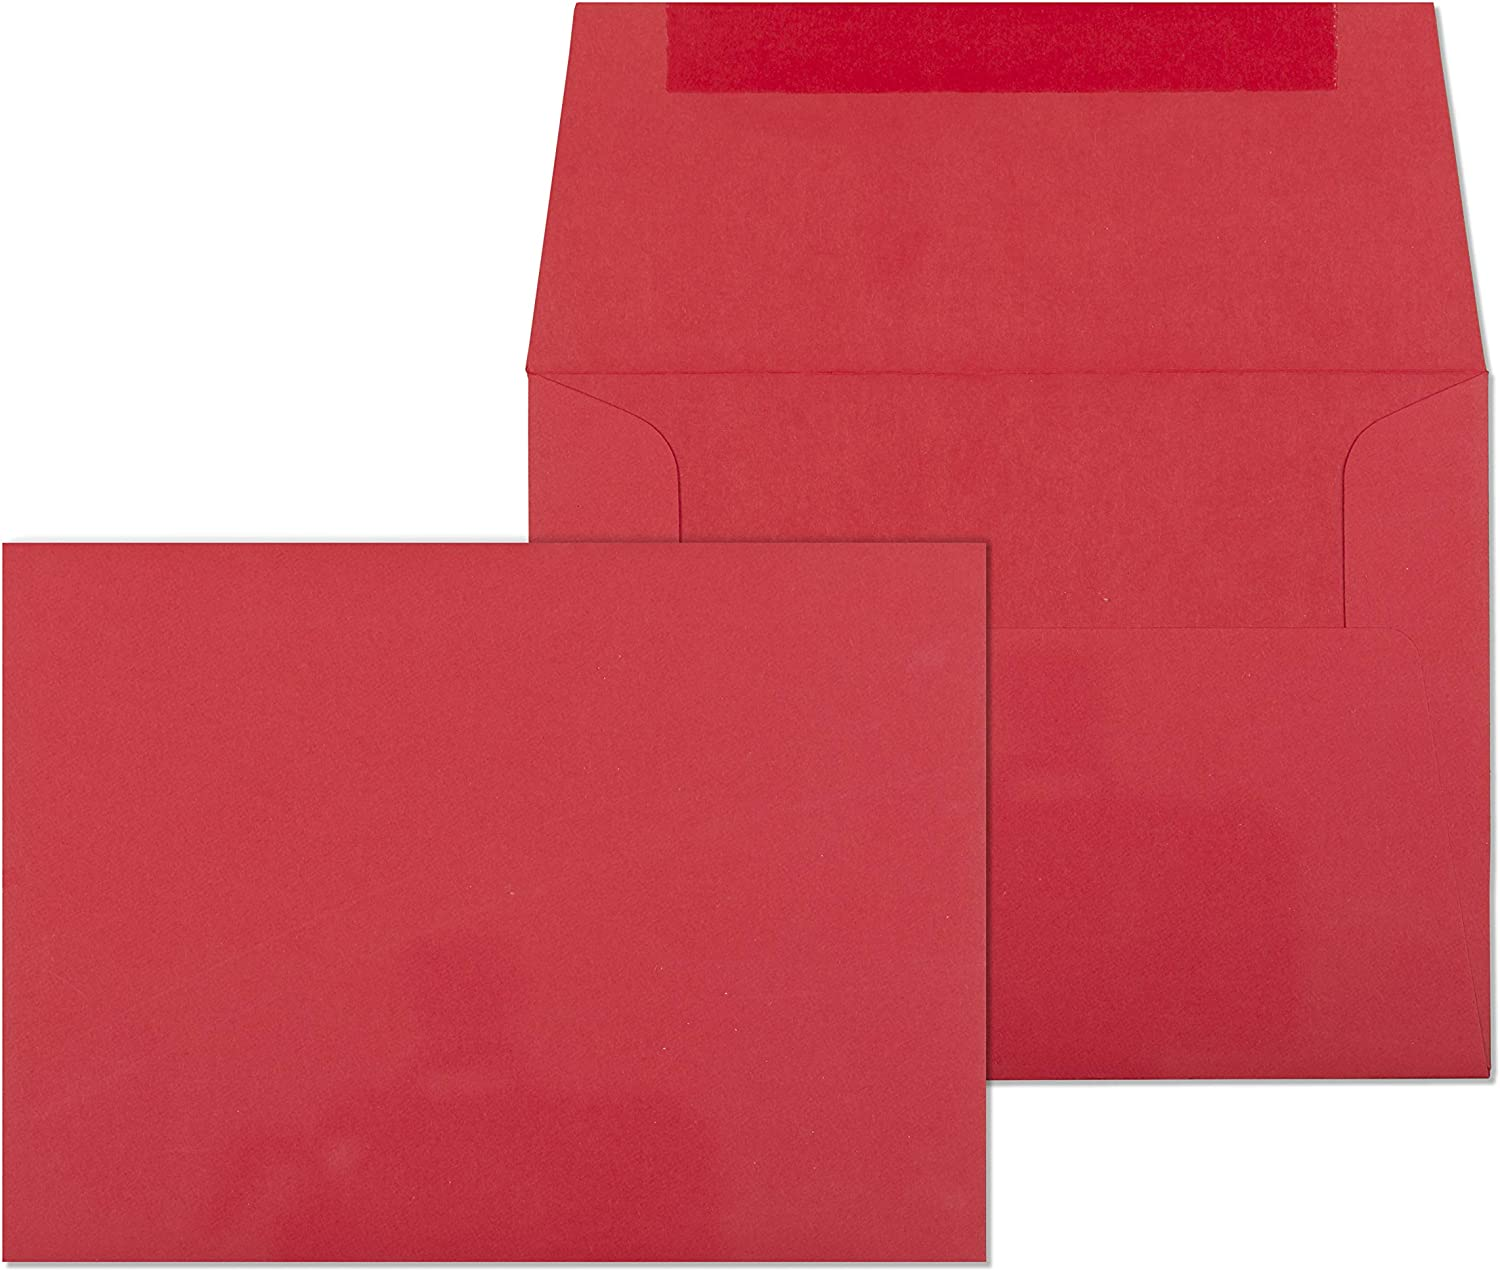 4x6 Envelopes for Invitations, Photos, Graduation, Baby Shower 4x6 Cards, Weddings,- Colored Envelope A6 4 3/4 x 6 1/2 Square Flap Pack of 50 (Red)